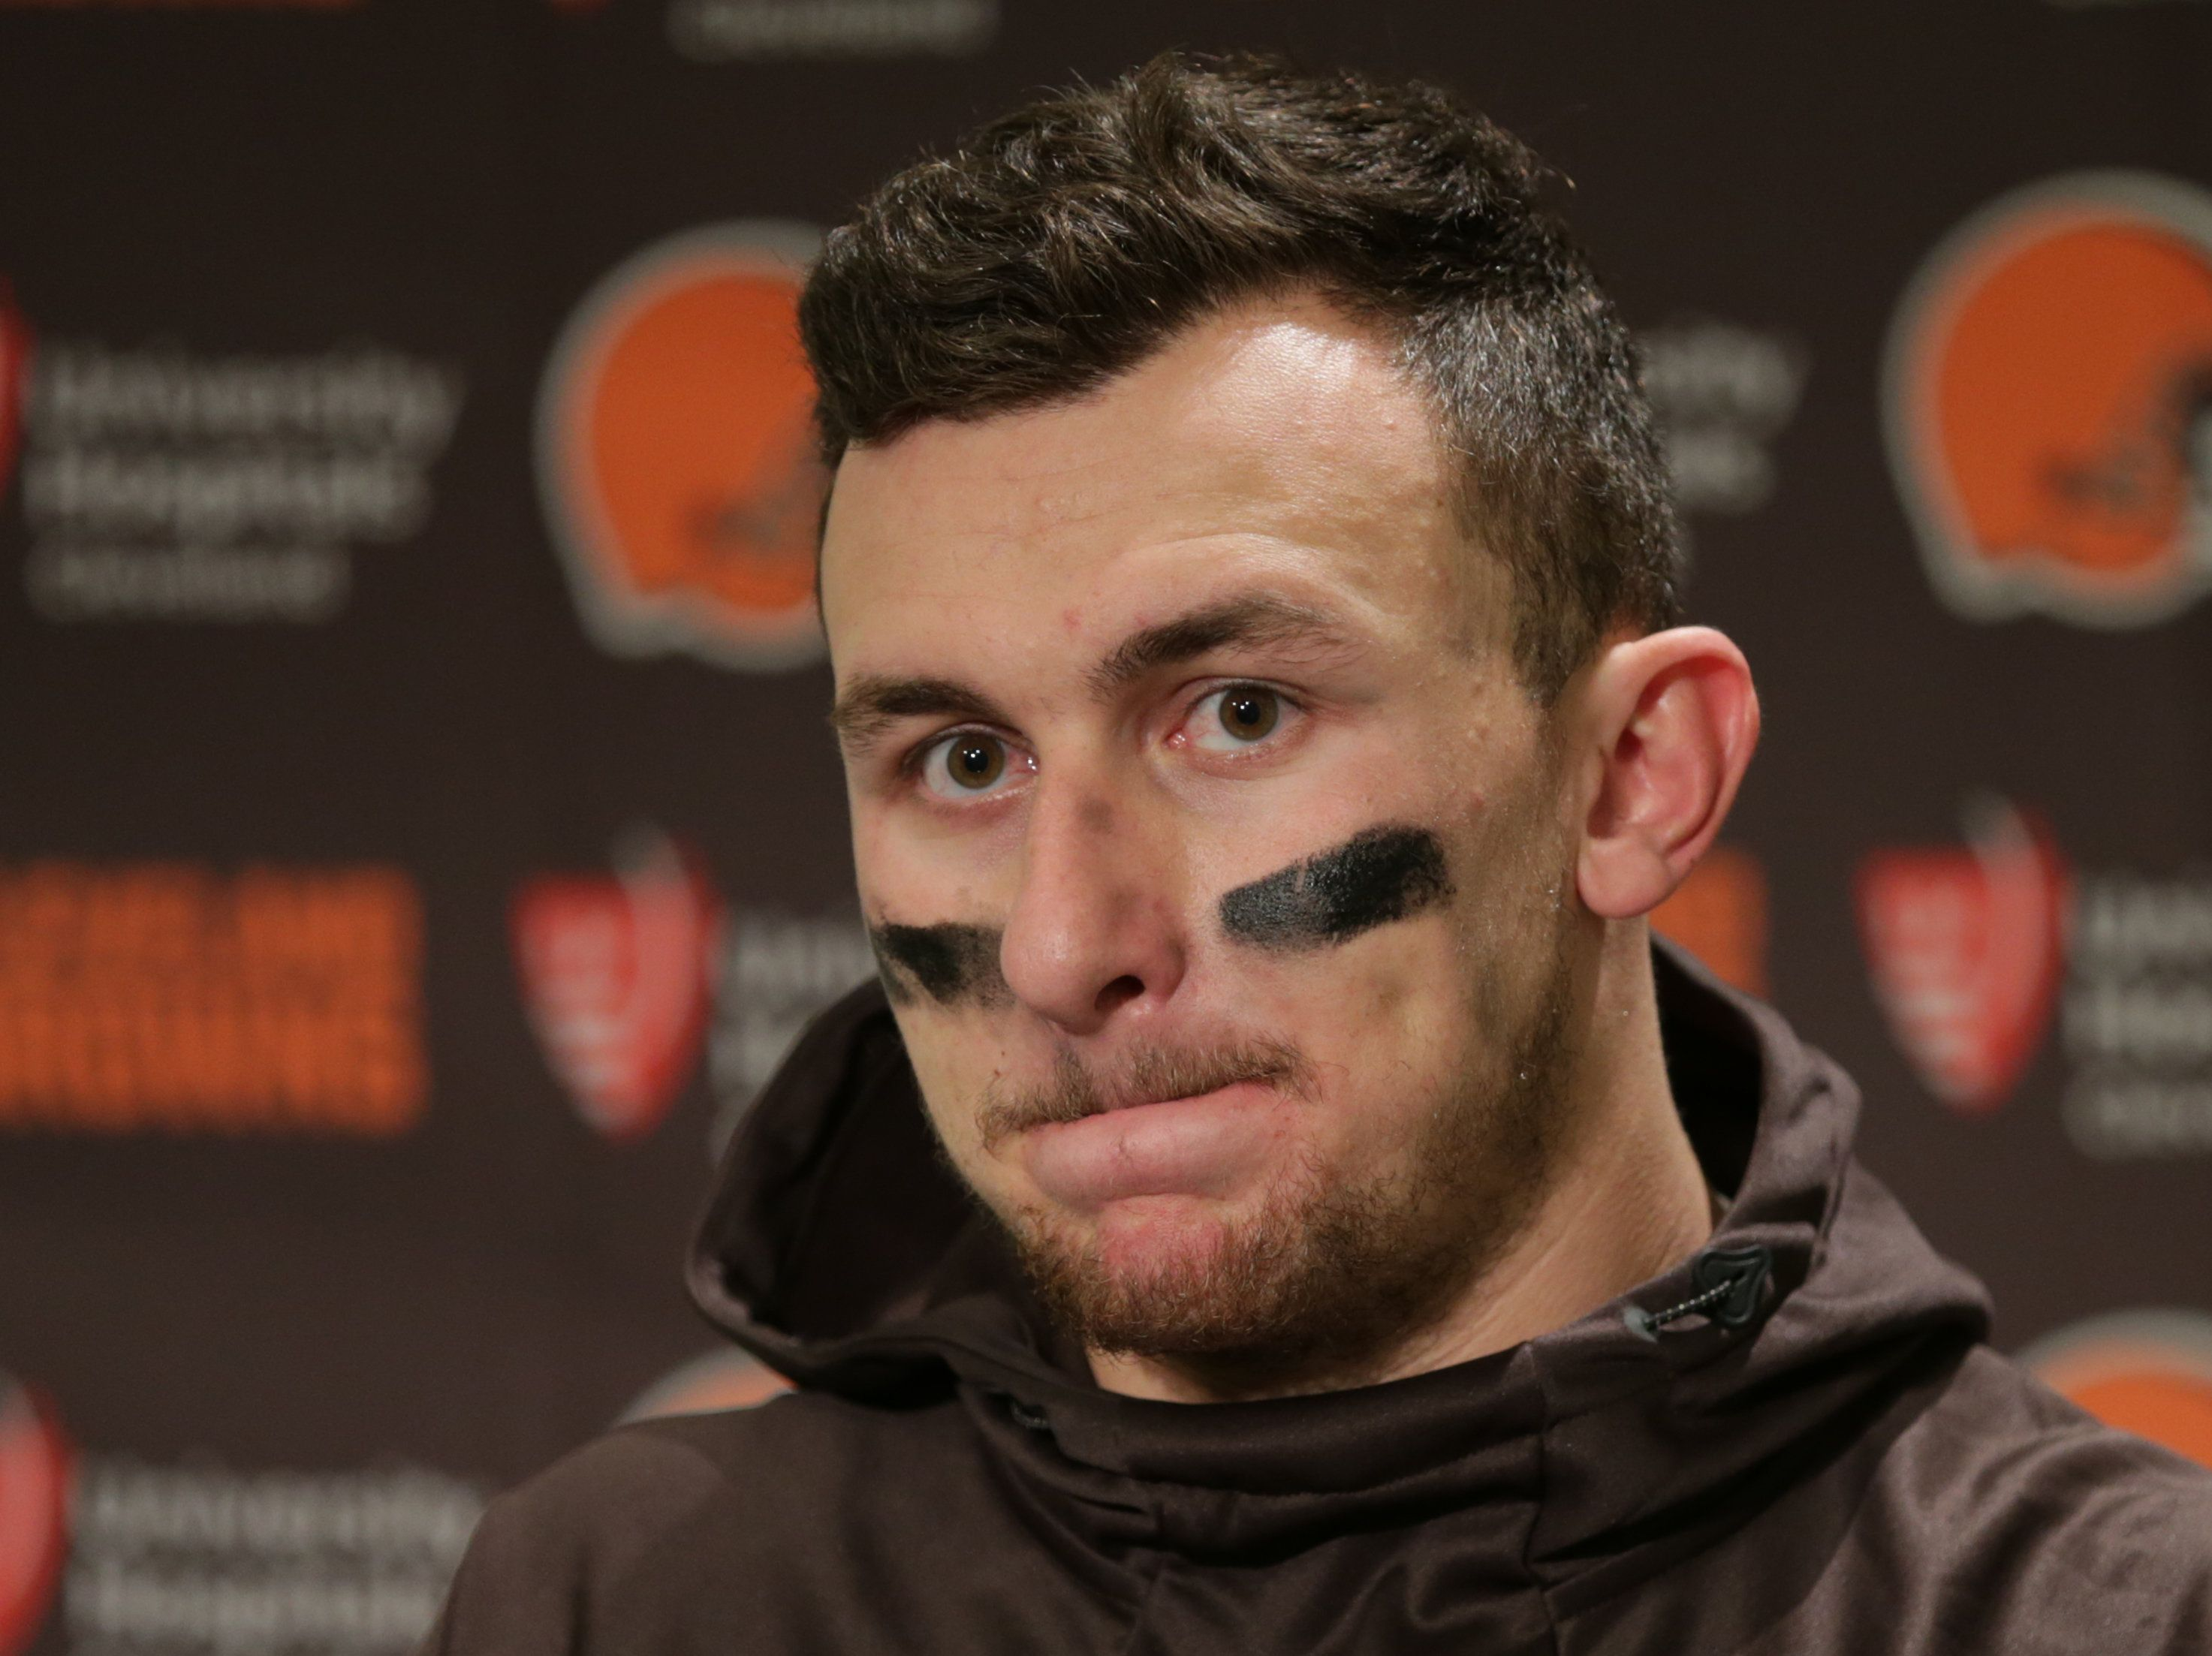 FILE - In this Dec. 20, 2015, file photo, Cleveland Browns quarterback Johnny Manziel speaks with media members following the team's 30-13 loss to the Seattle Seahawks in an NFL football game, in Seattle. A Dallas judge has set a $1,500 bond for former Cleveland Browns quarterback Johnny Manziel in his misdemeanor domestic assault case. (AP Photo/Scott Eklund, File)